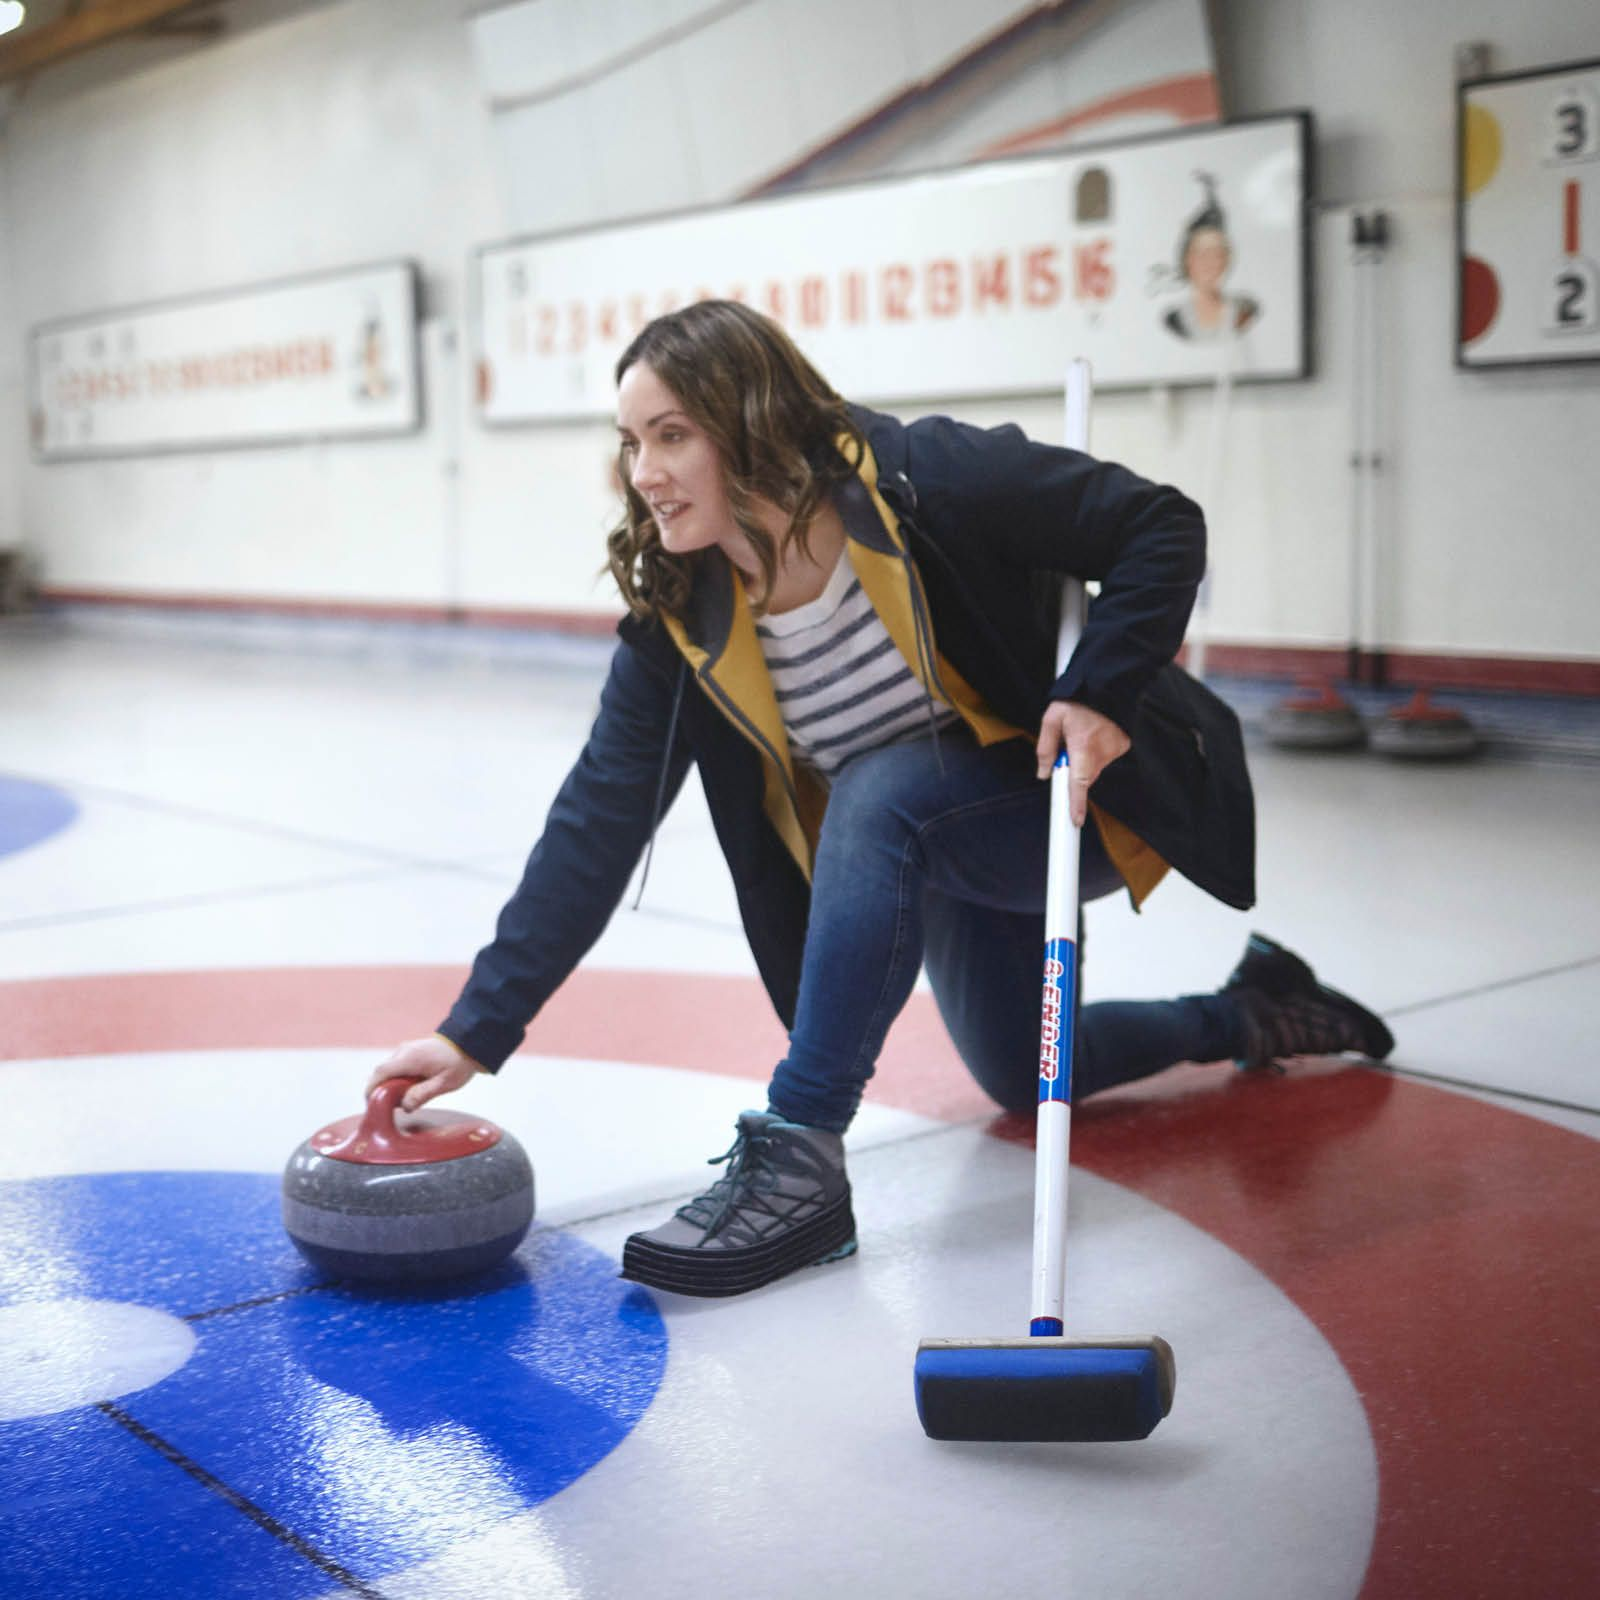 Jana Bookholt at the Curling Rink.